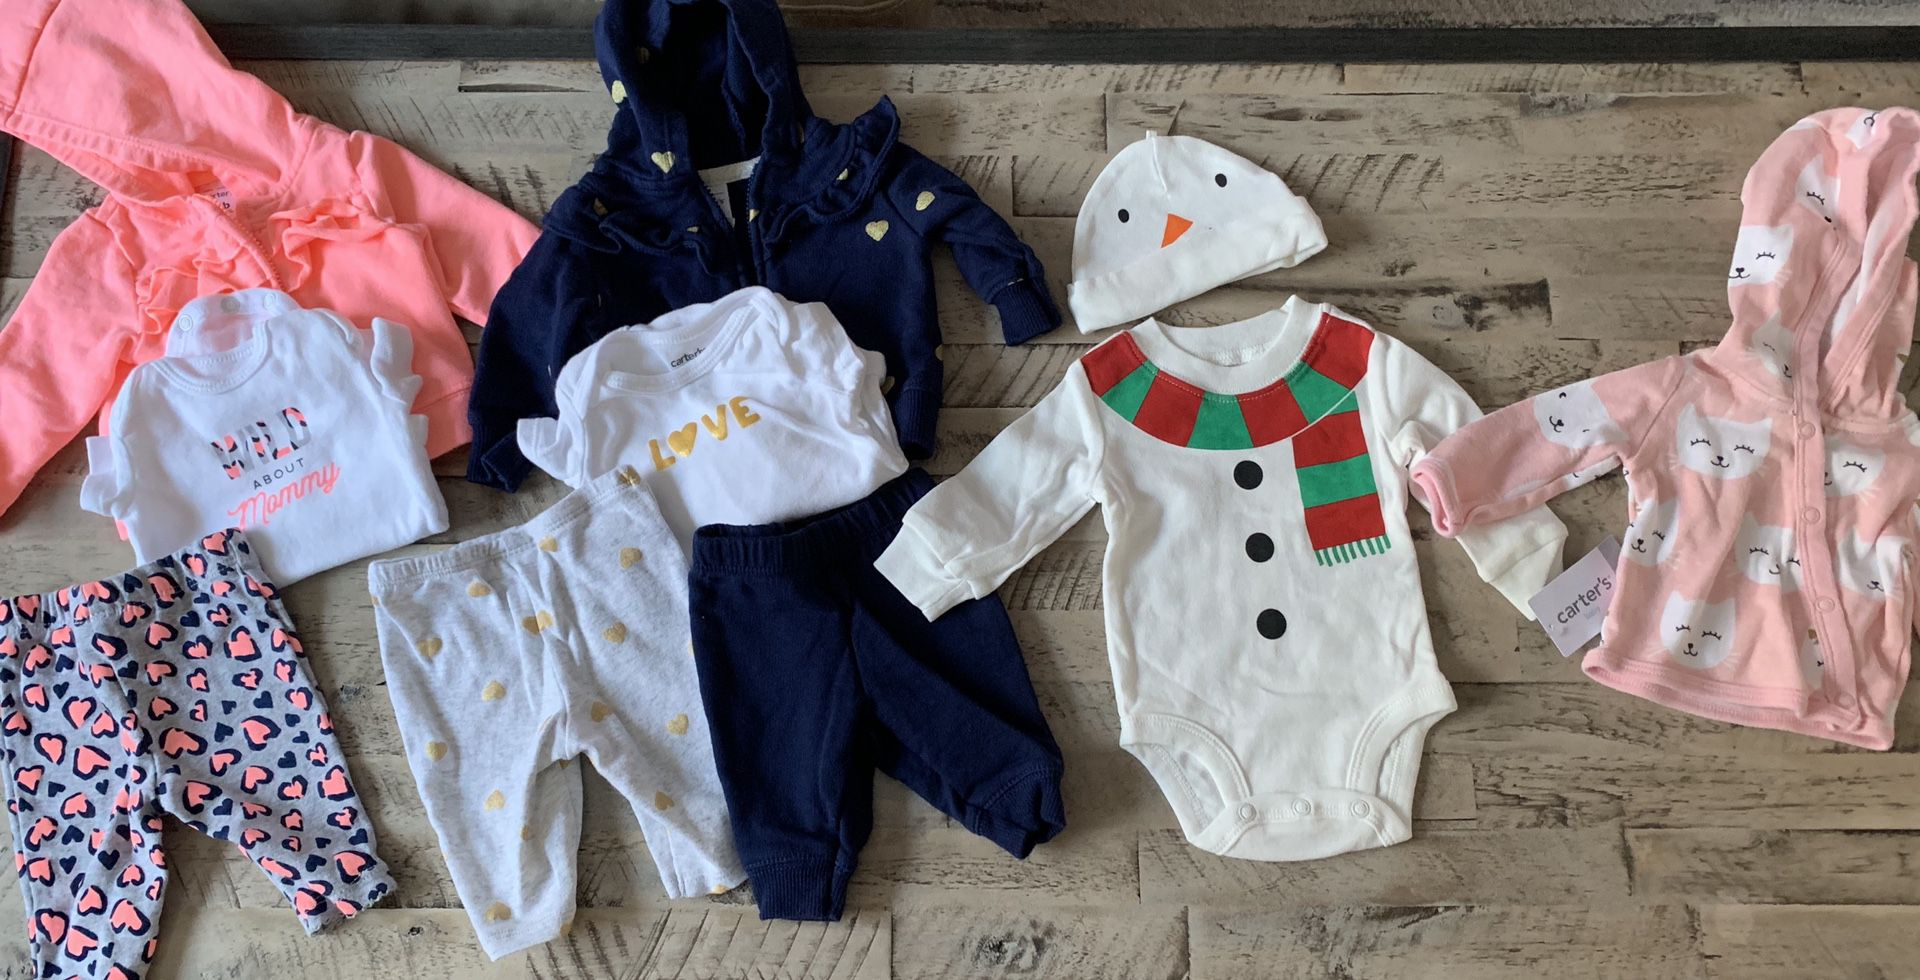 Newborn baby girl clothes and accessories